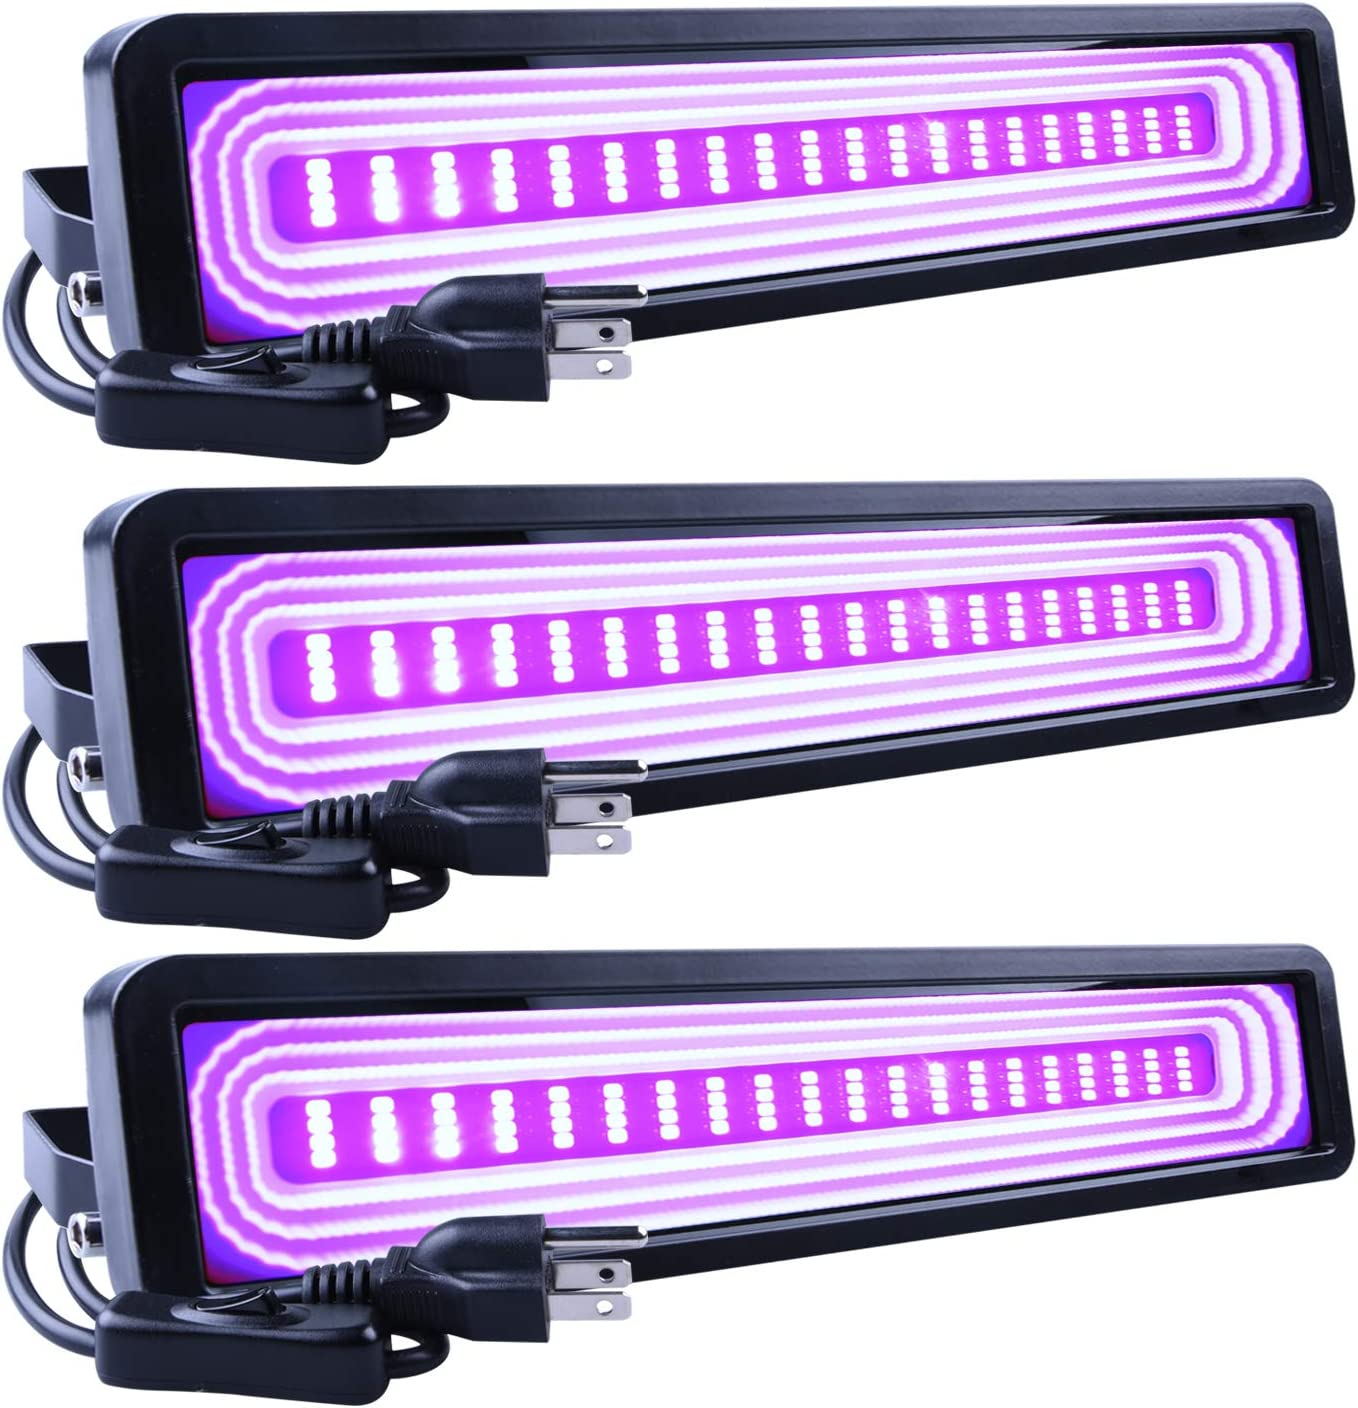 SHPODA 3 Pack 36W LED Black Light Bar Flood Light,with Plug and Switch(5ft Cable),IP66 Waterpro,Glow in The Dark Party Supplies for Stage Lighting,Halloween,Body Paint,Birthday Wedding Party